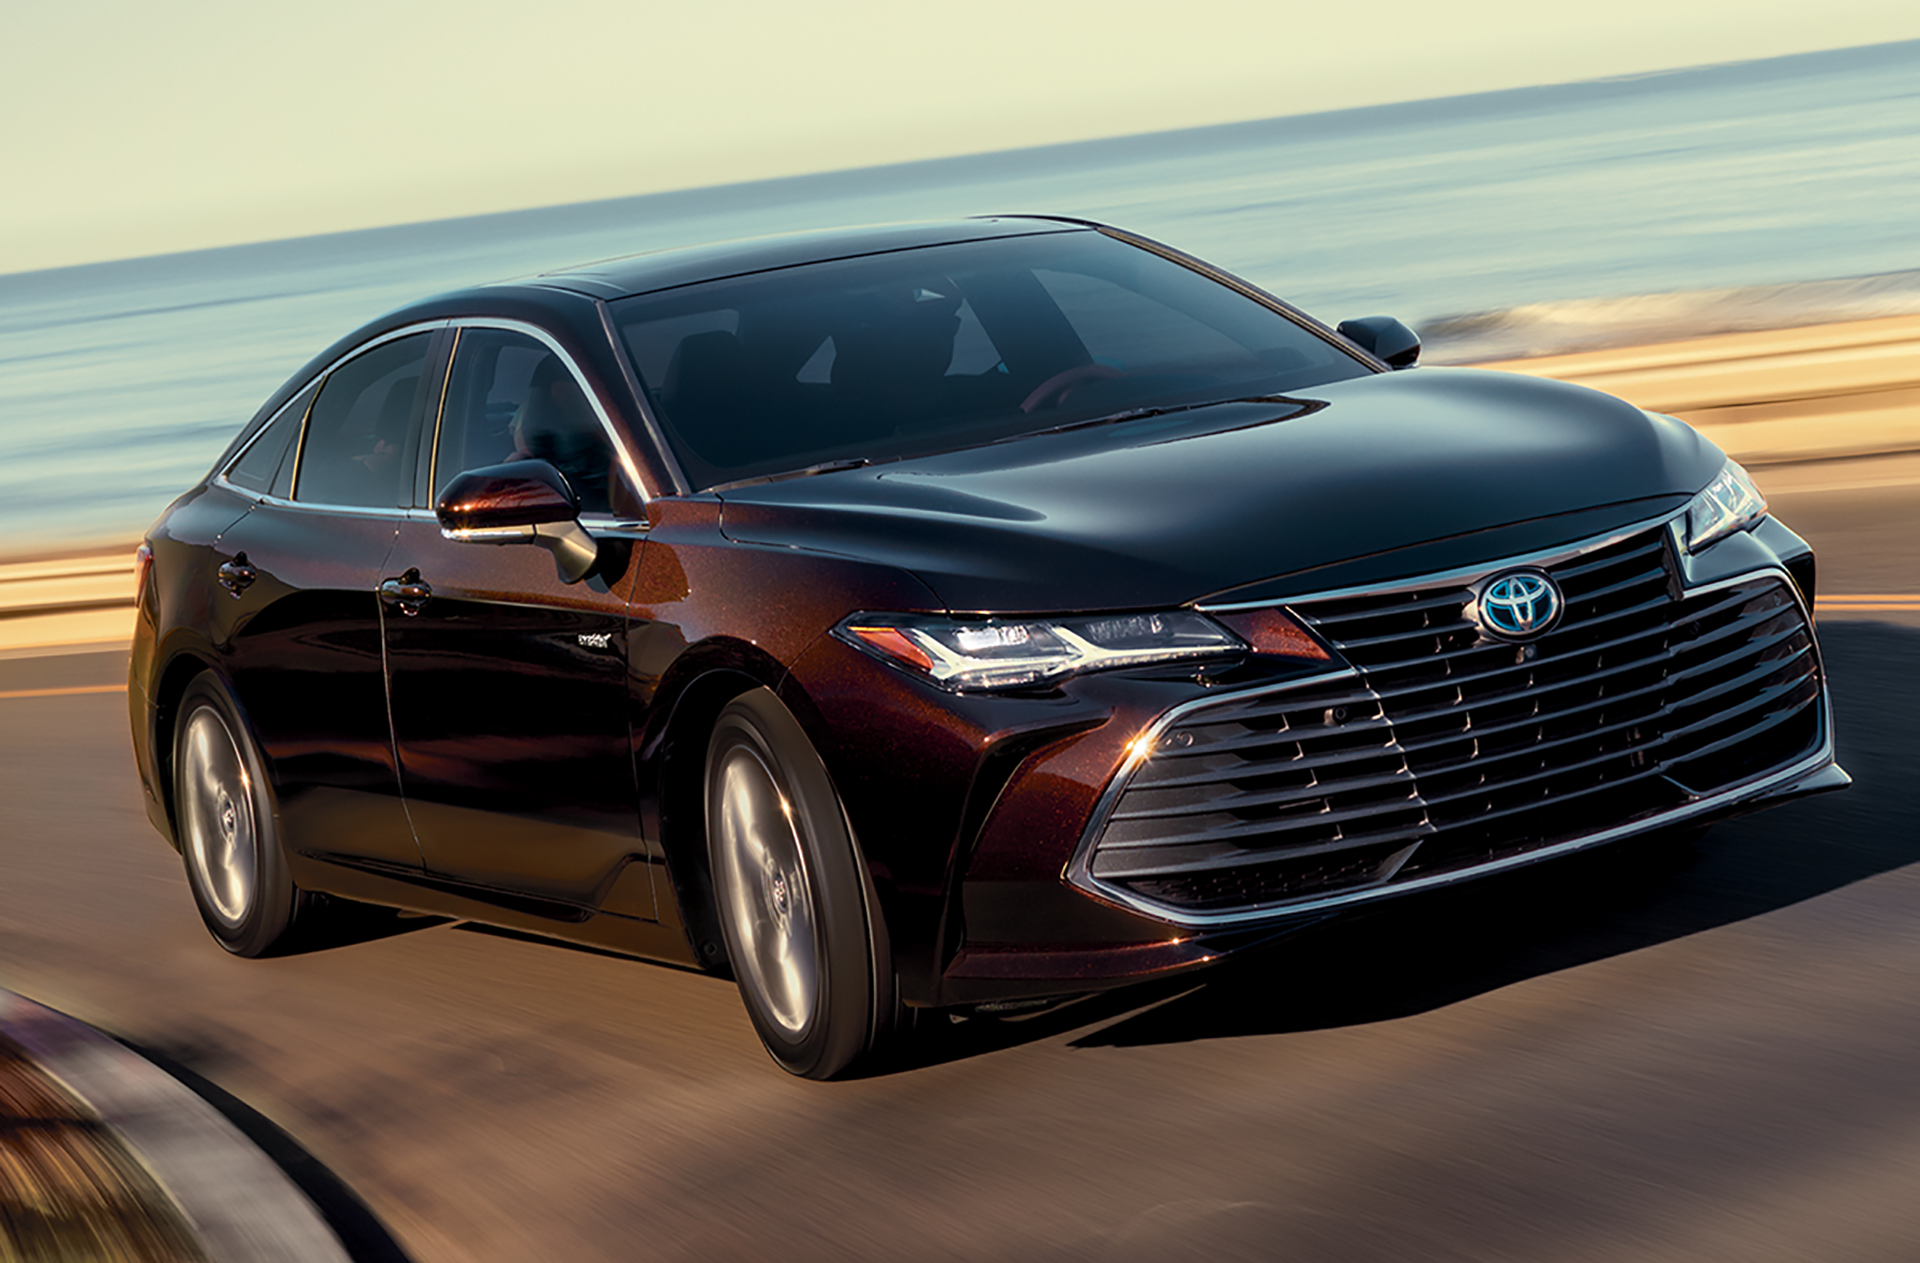 2019 Toyota Avalon Hybrid driving on a Coastal Highway